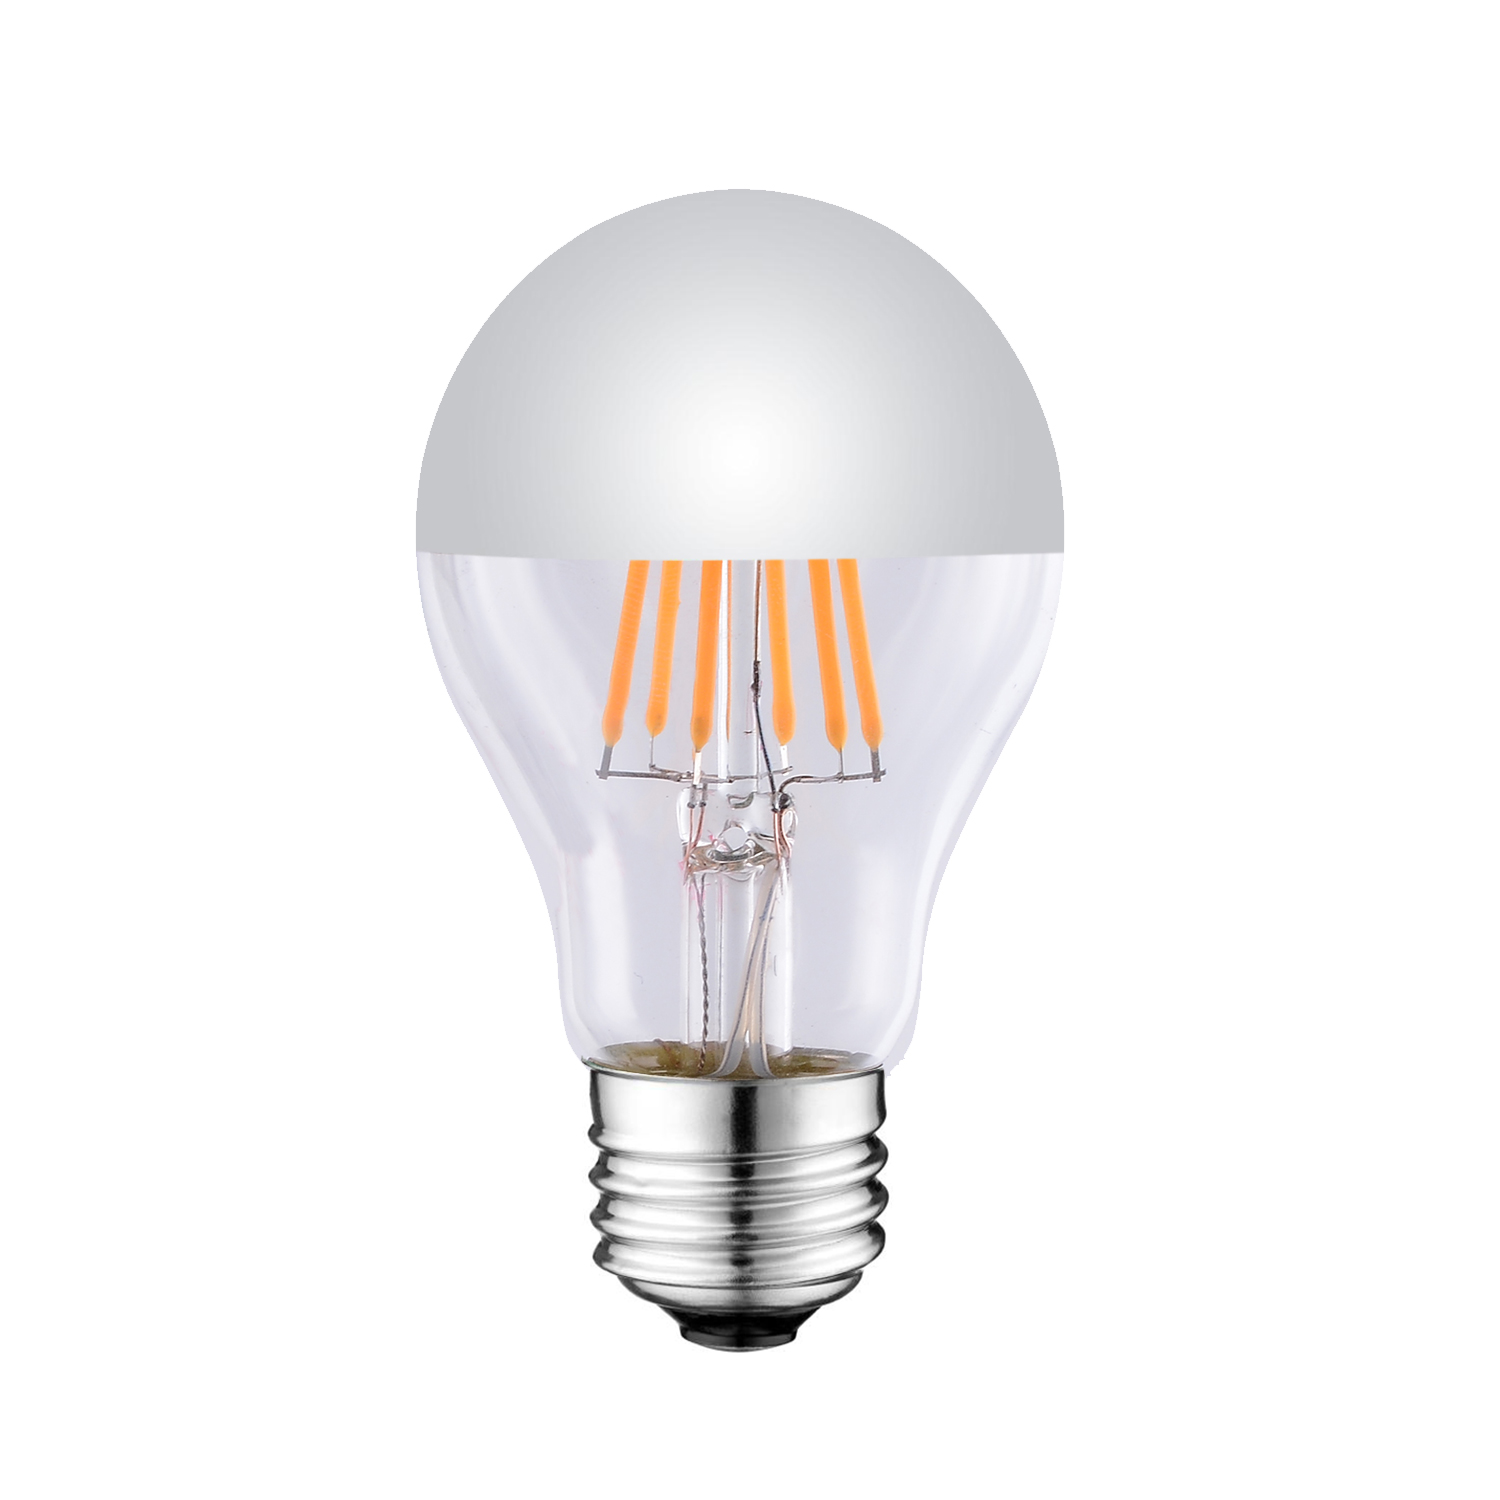 A21 Mirrored LED FILAMENT BULB UL ETL LISTED